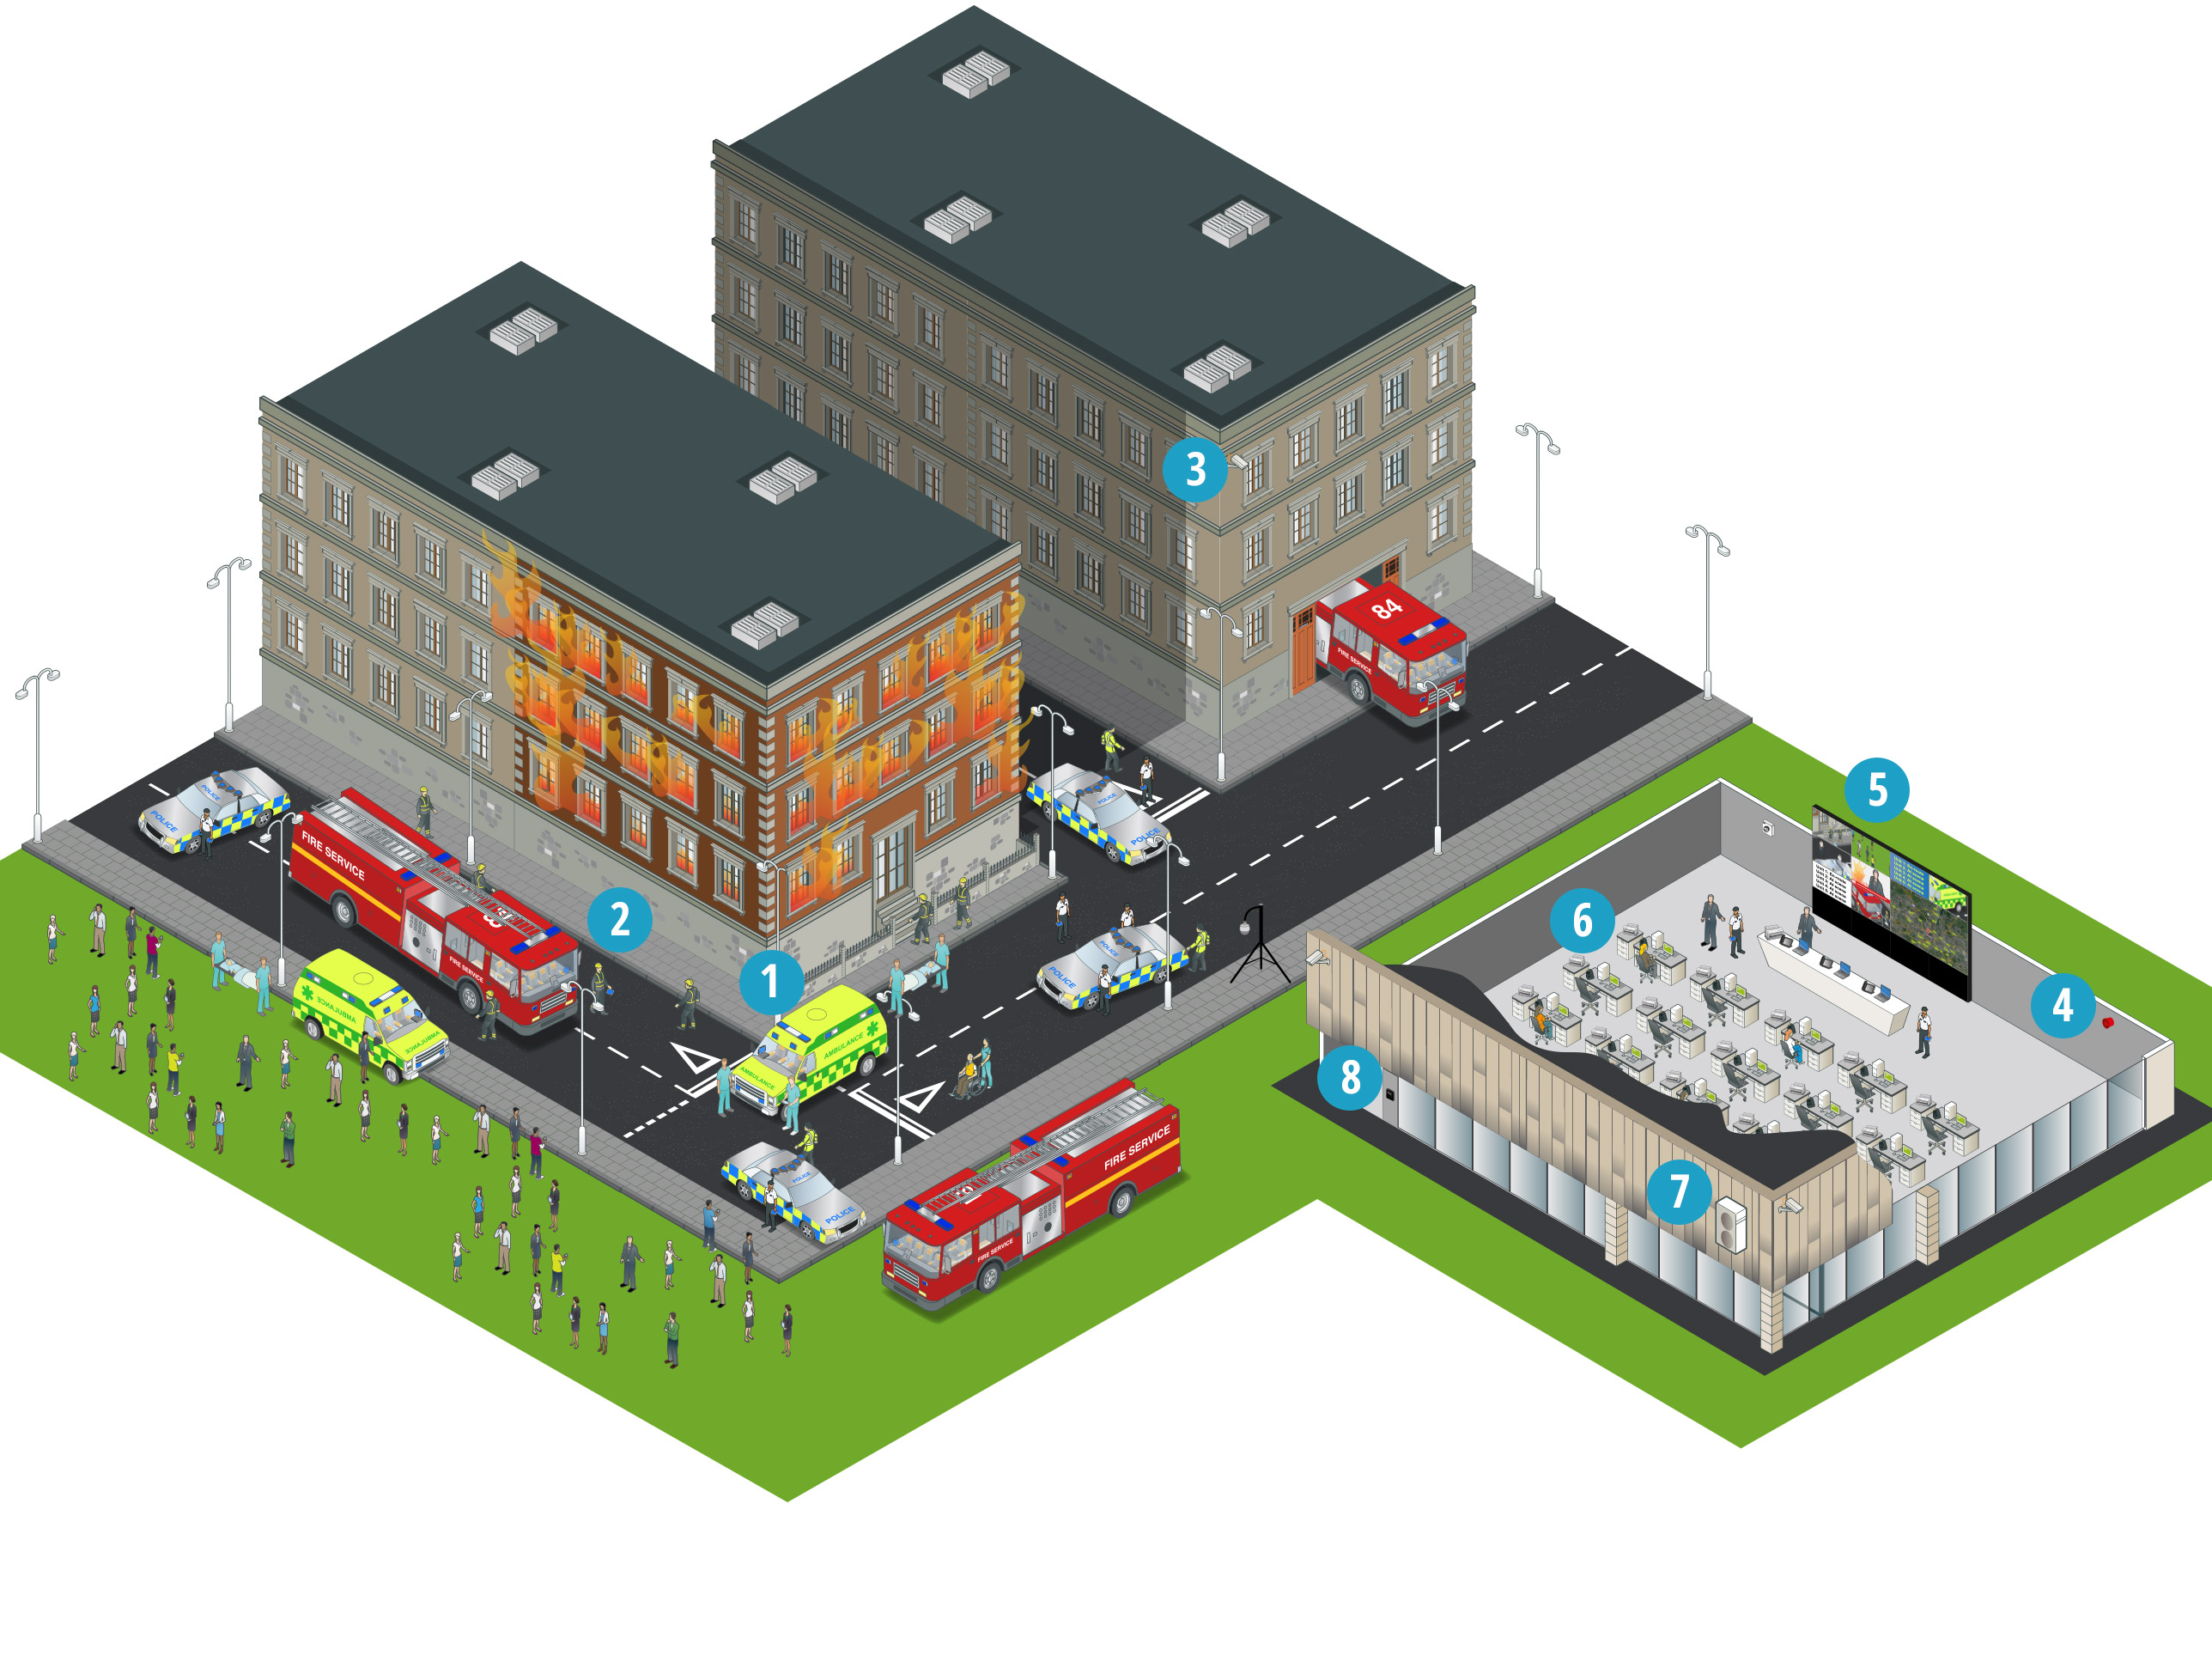 How do Panasonic solutions support emergency services?